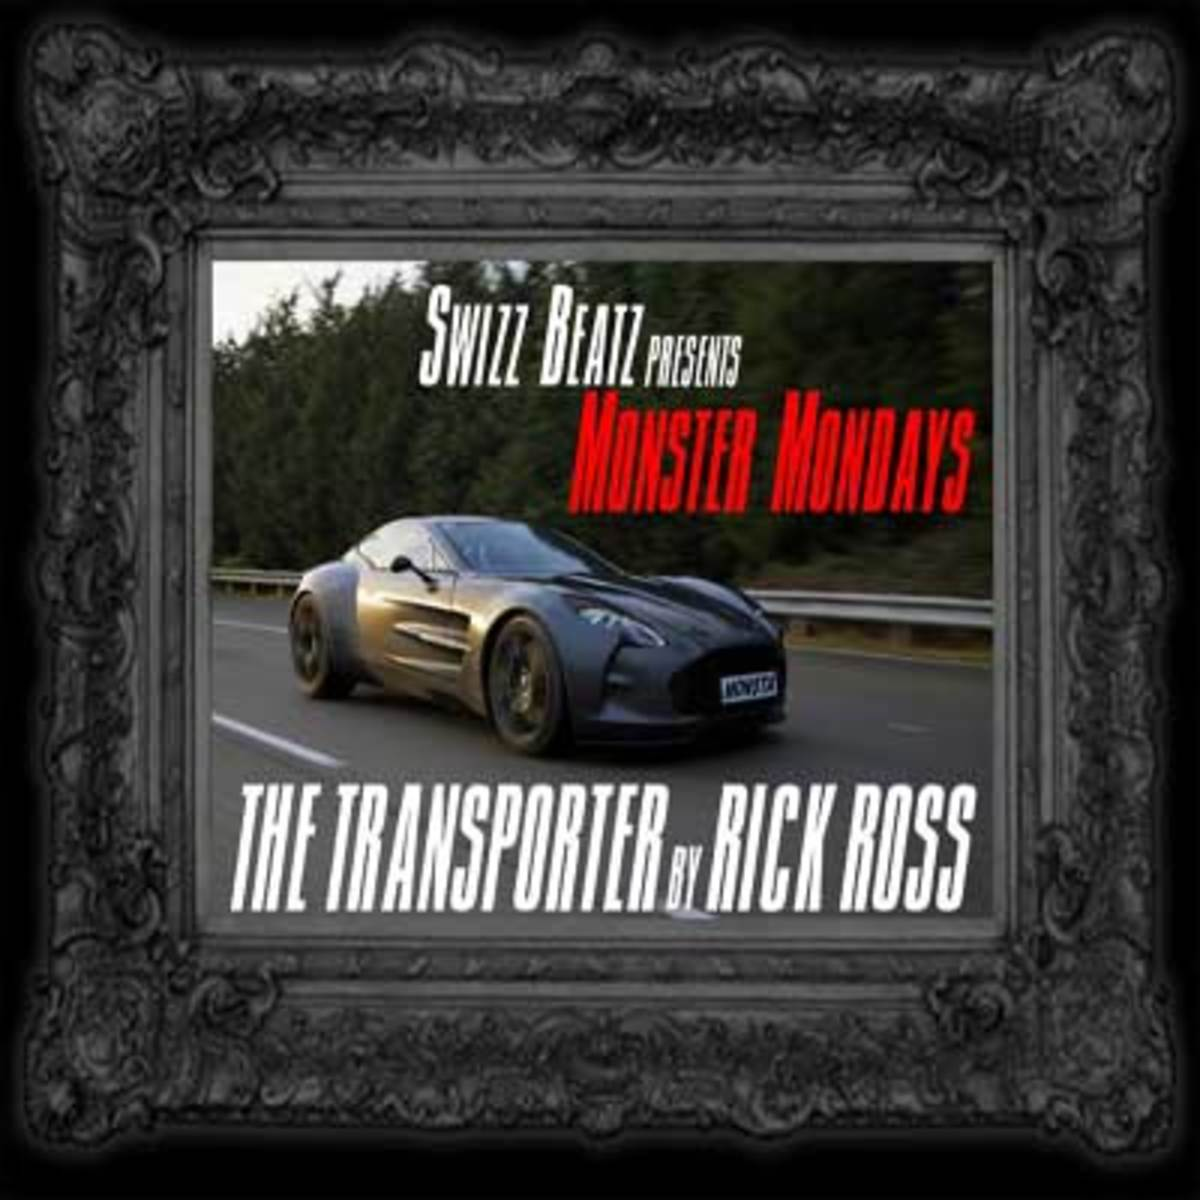 rickross-thetransporter.jpg